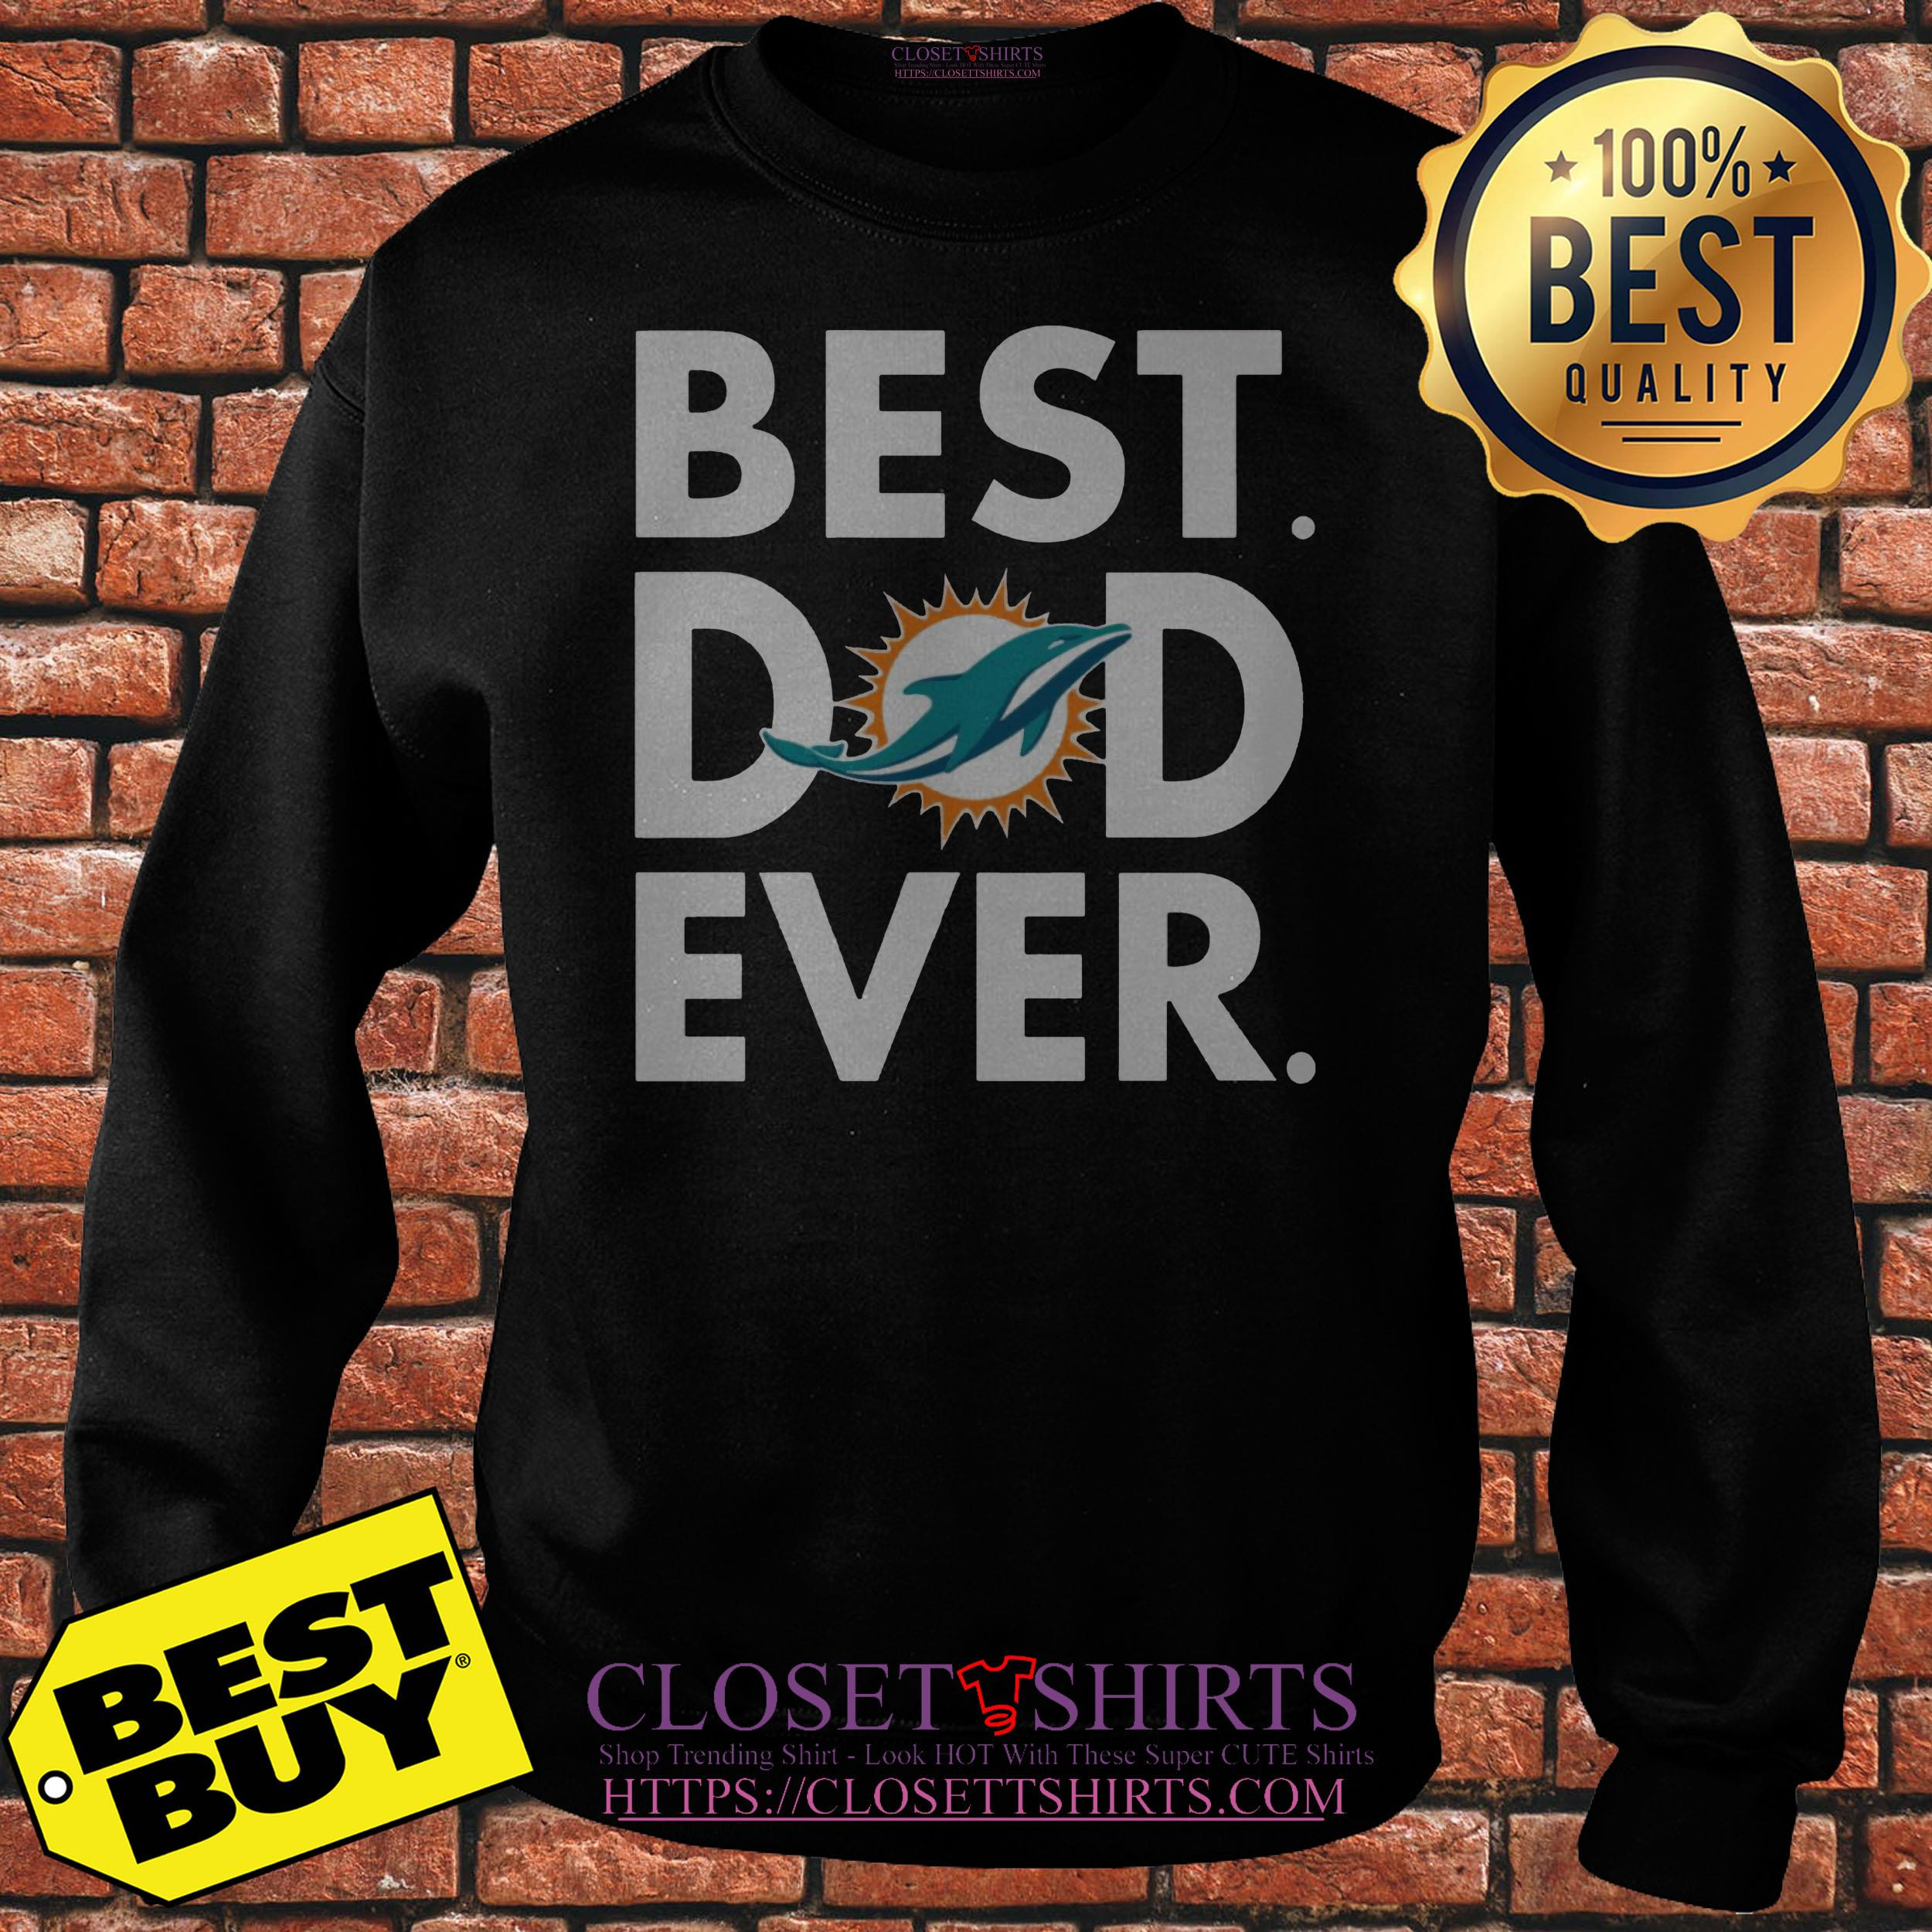 new products 25e7d 56509 Miami Dolphins Best Dad Ever shirt